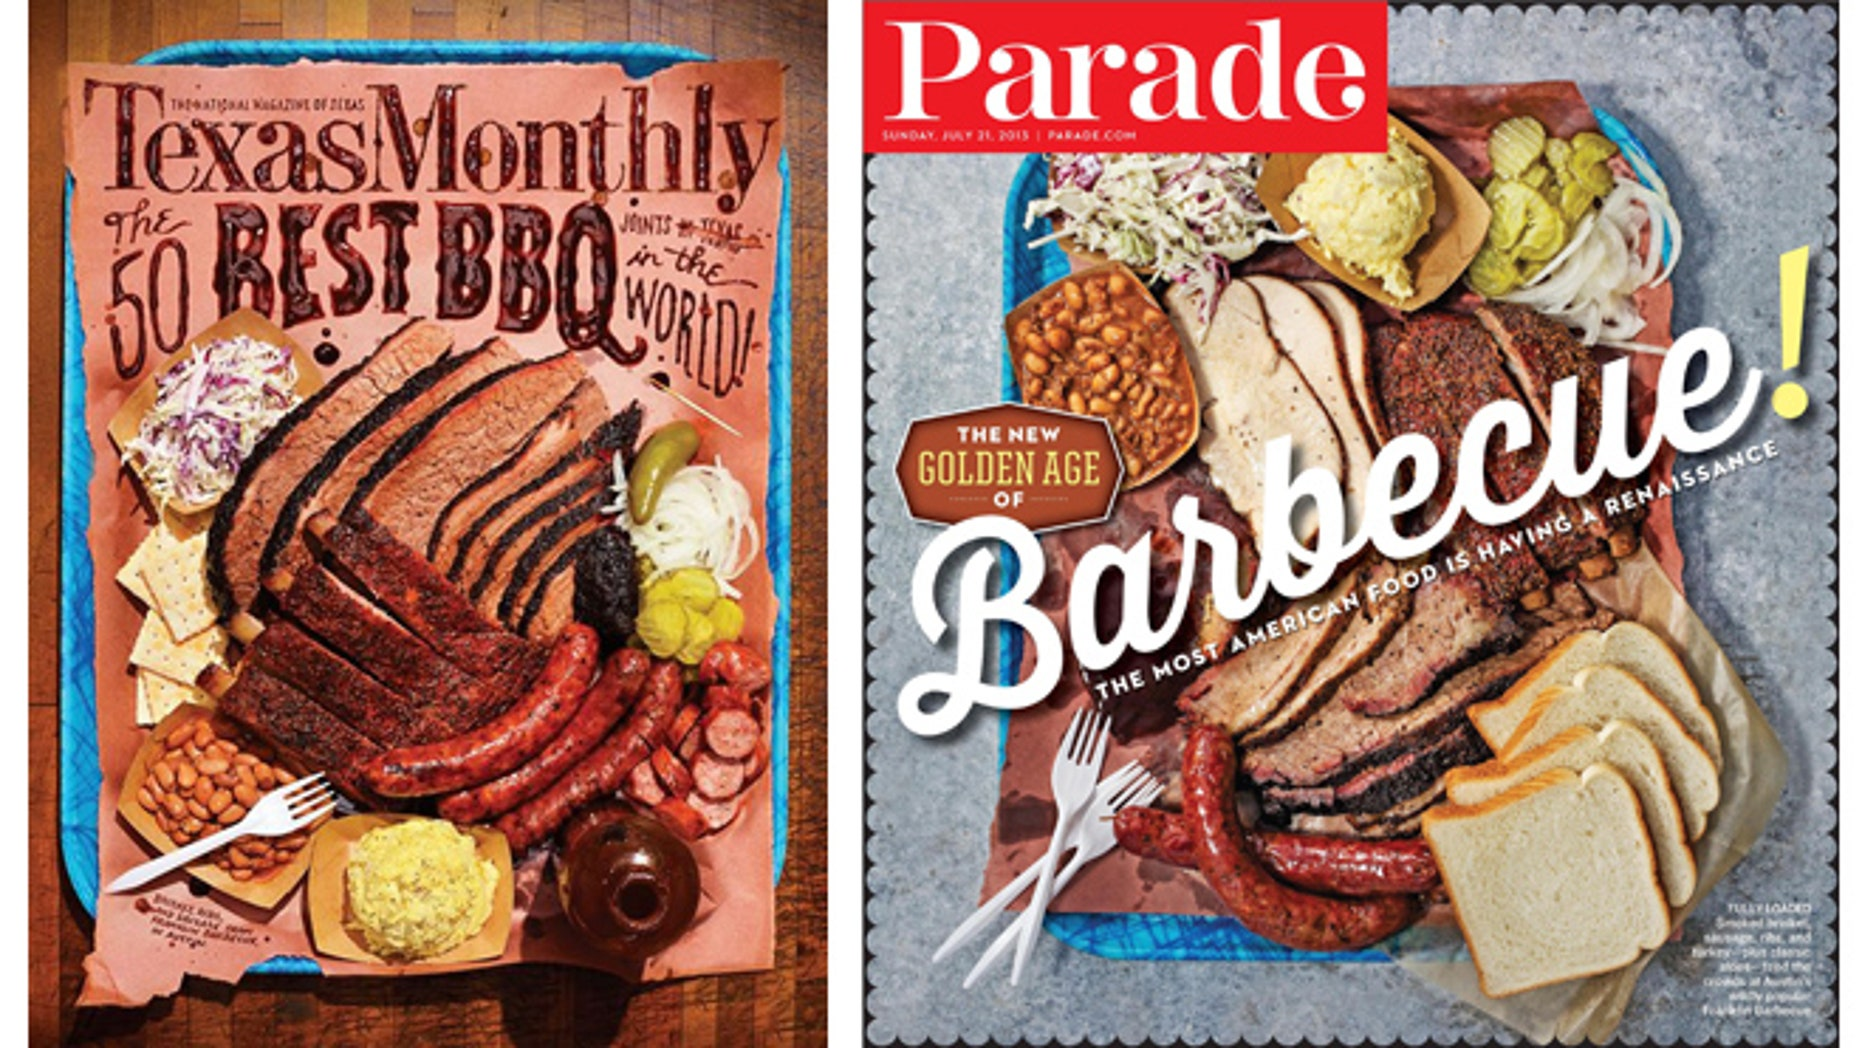 Seen side by side, the covers of the May edition of Texas Monthly and the recent issue of Parade have striking similarities.